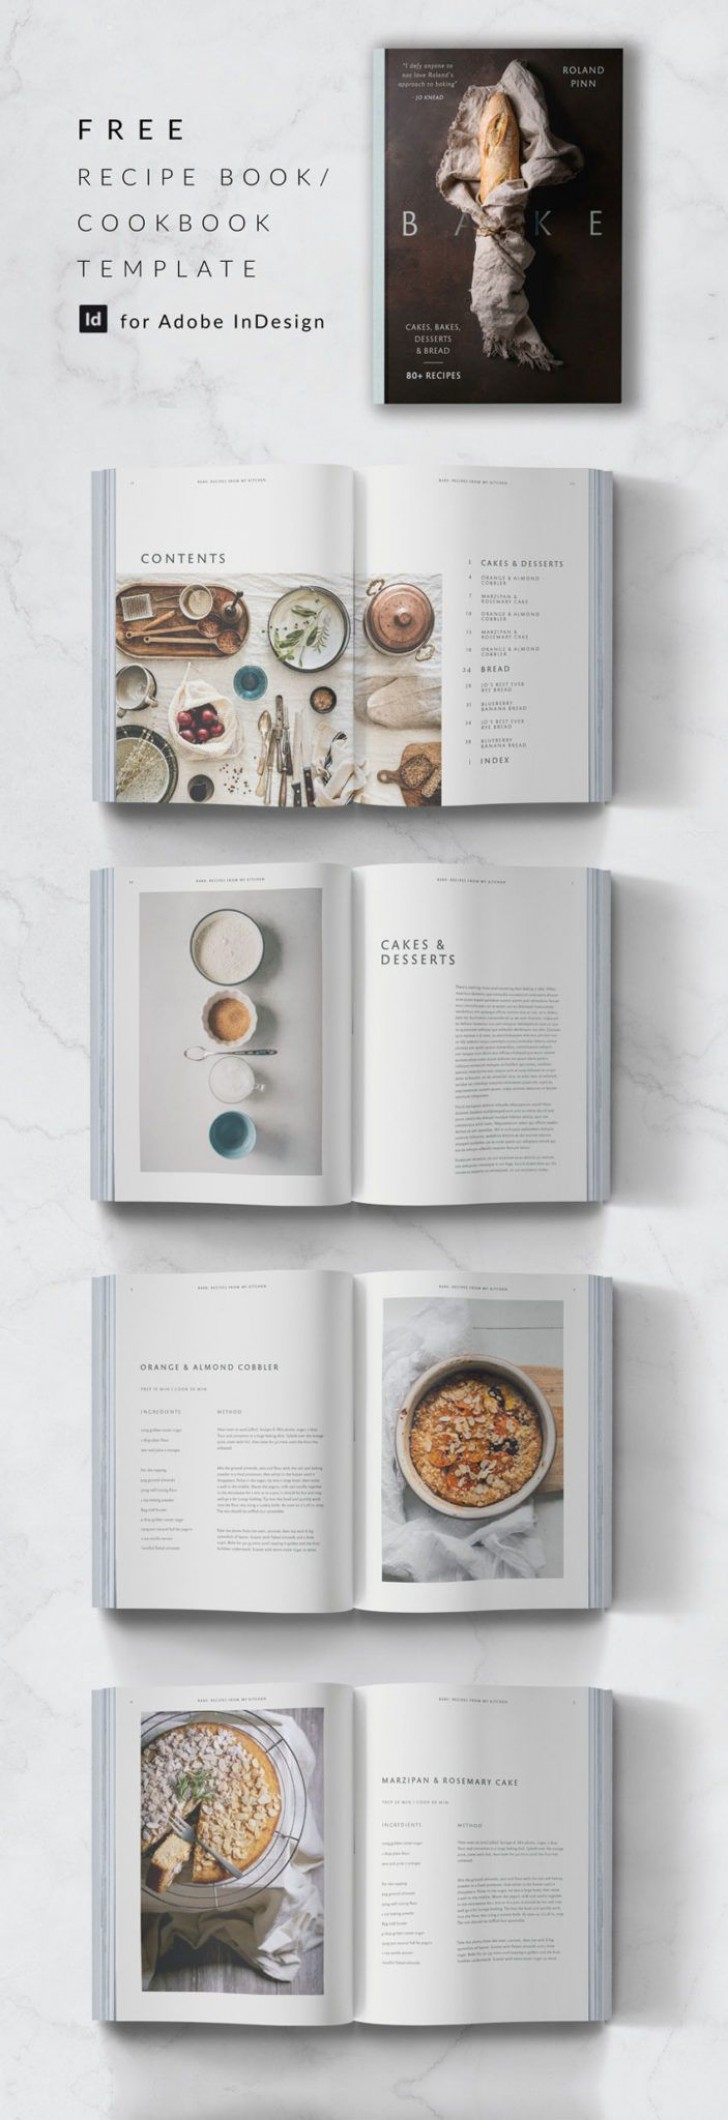 011 Remarkable Create Your Own Cookbook Free Template Sample 728